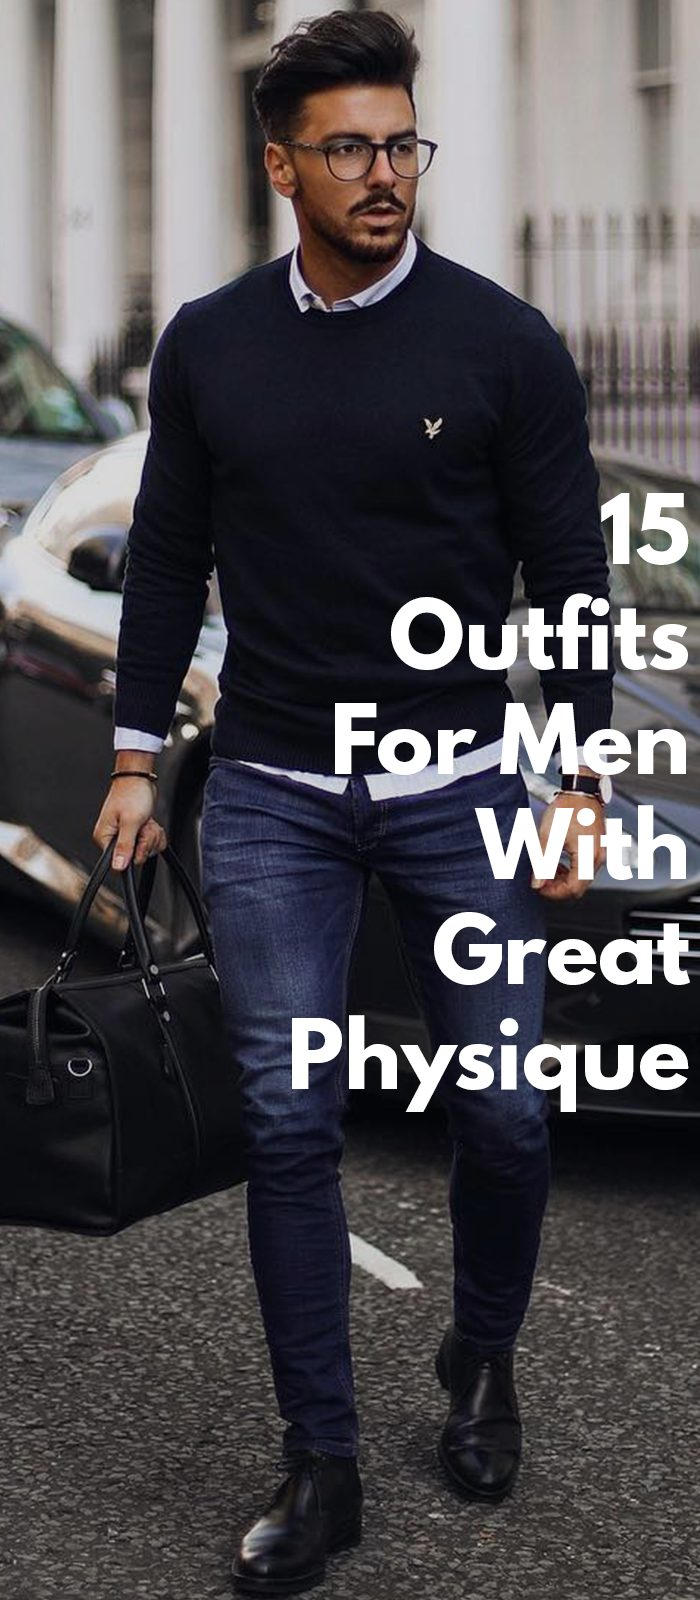 15 Outfits For Men With Great Physique